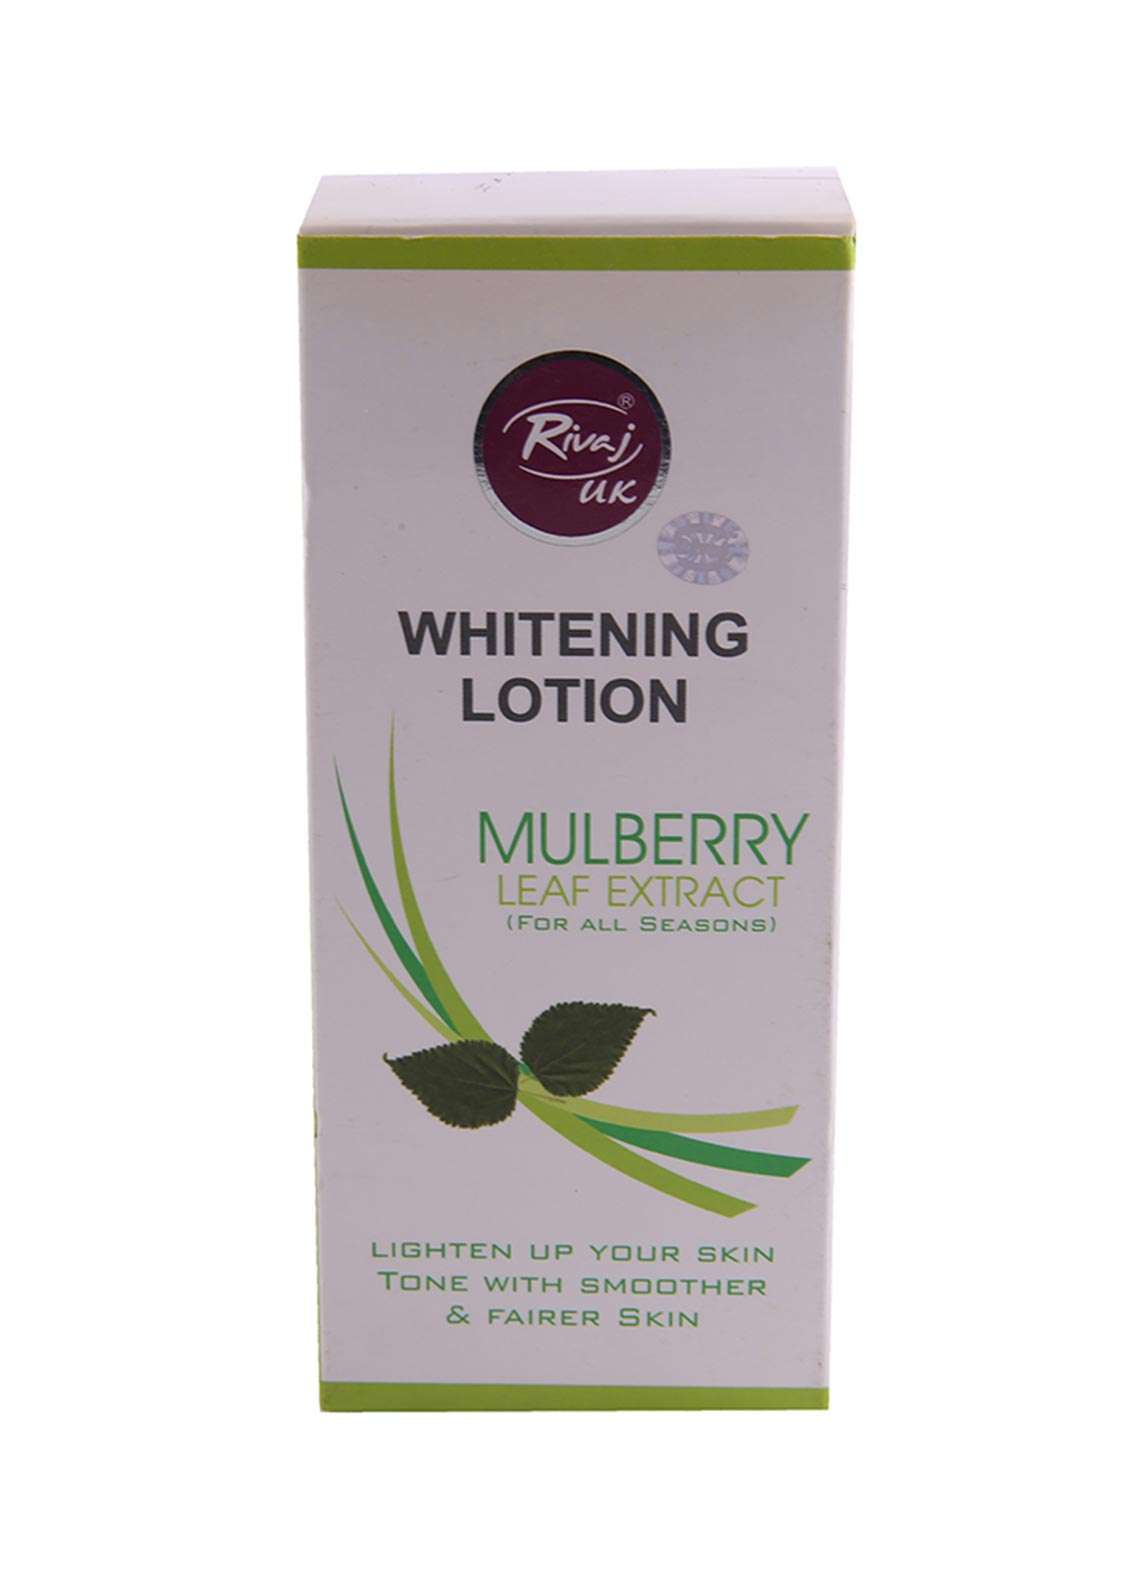 Rivaj UK Whitening Lotion - Mulberry Leaf Extract